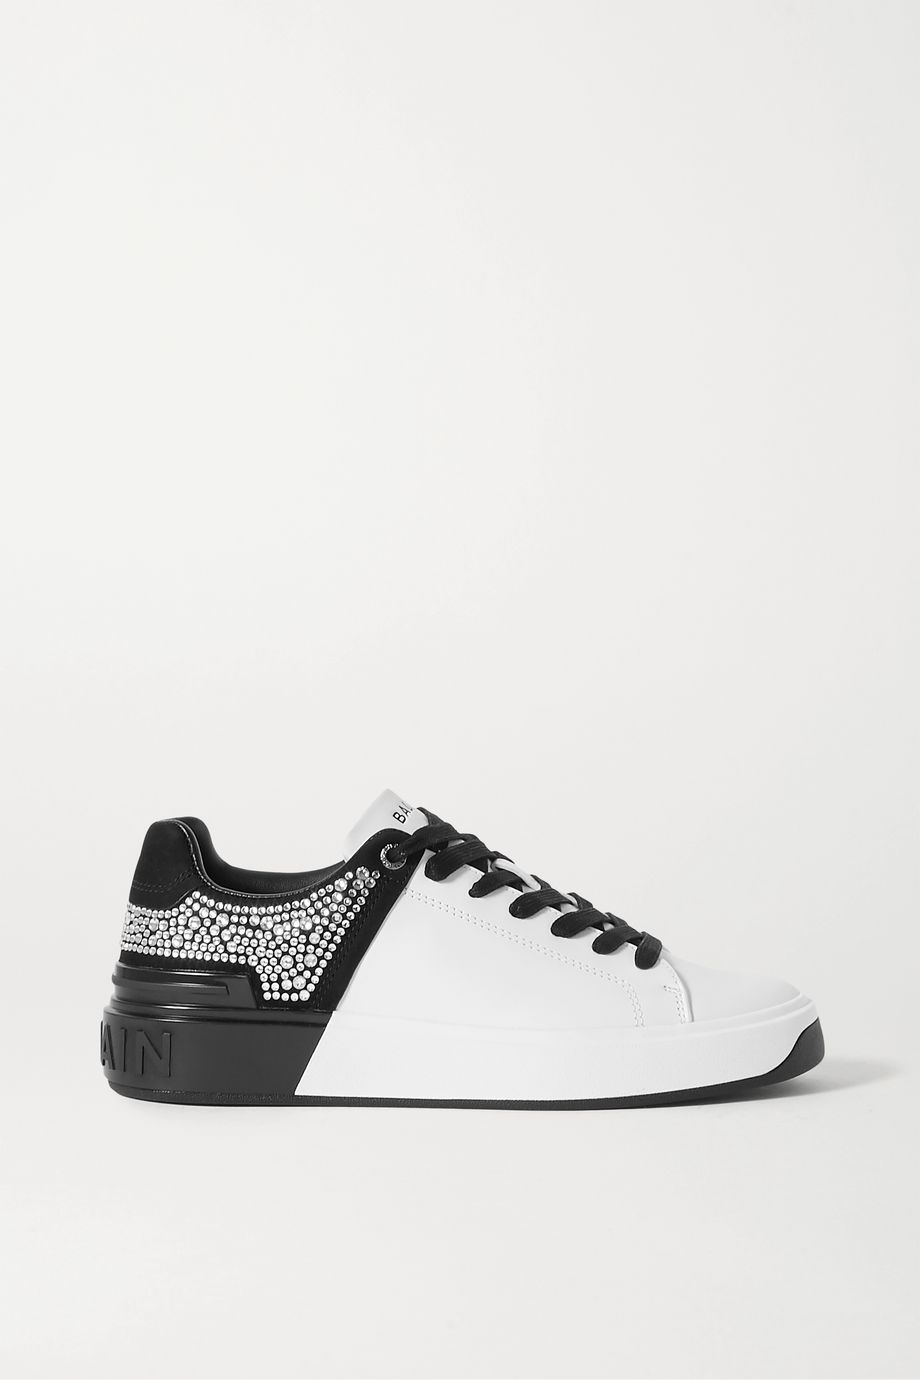 Balmain B-Court crystal-embellished two-tone leather and suede sneakers